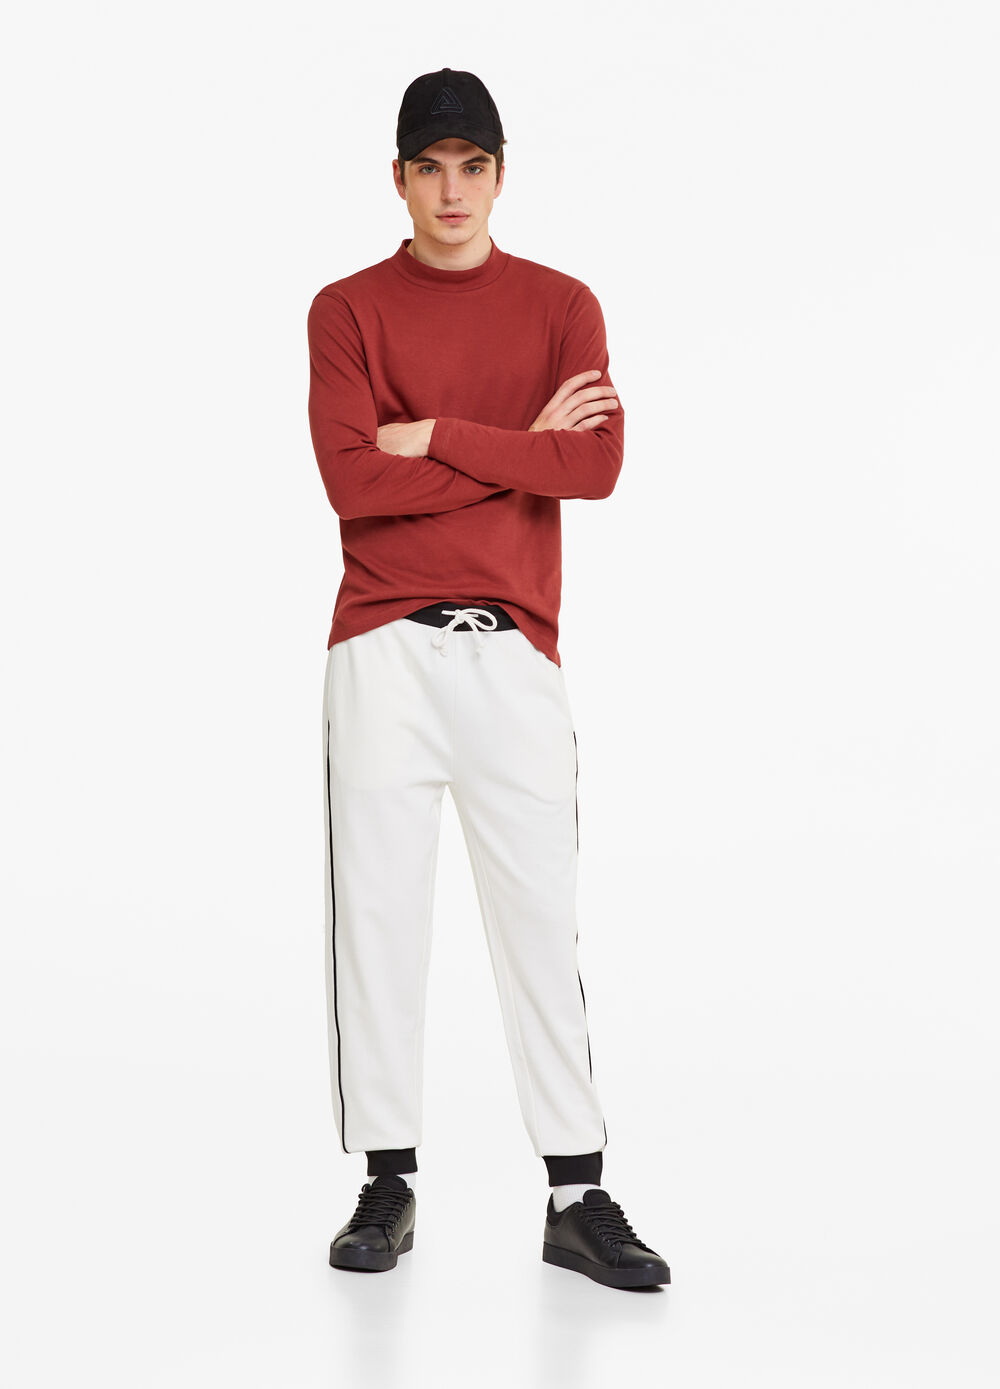 Trousers in 100% cotton fleece